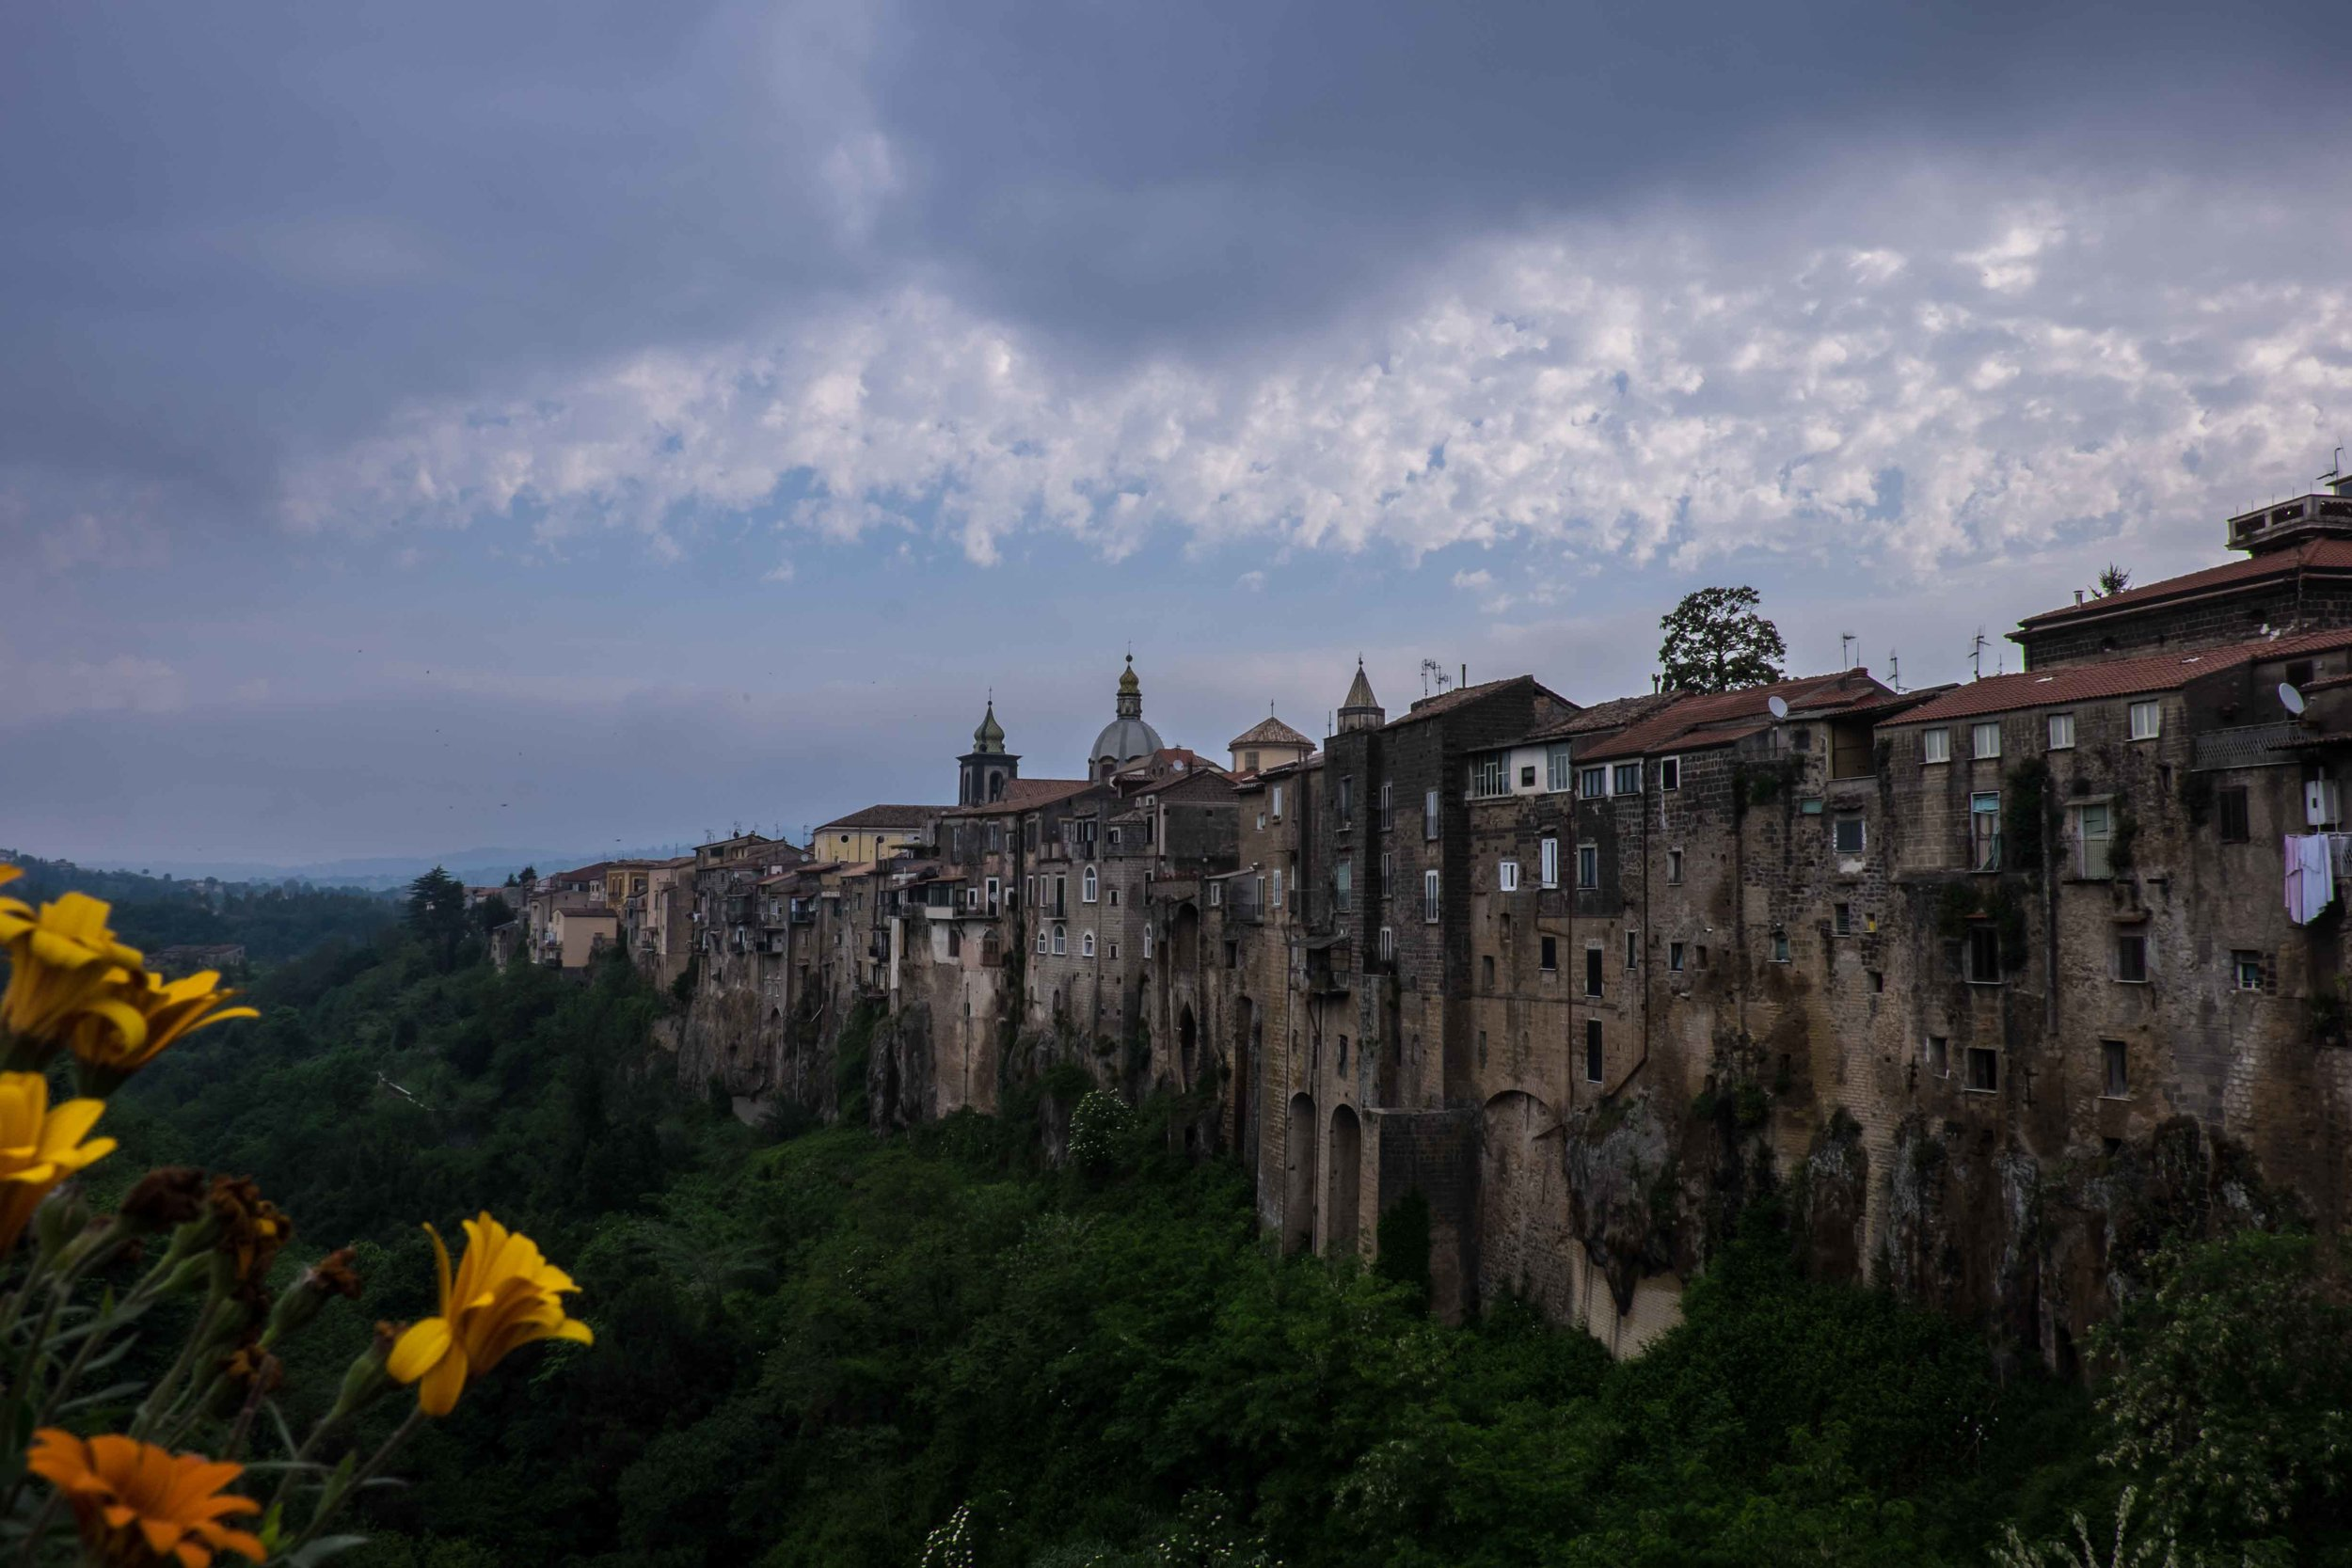 Sant'Agata dei' Goti on a spur of volcanic rock, Campania, Italy |  ©John Szabo (published by Jacqui Small)